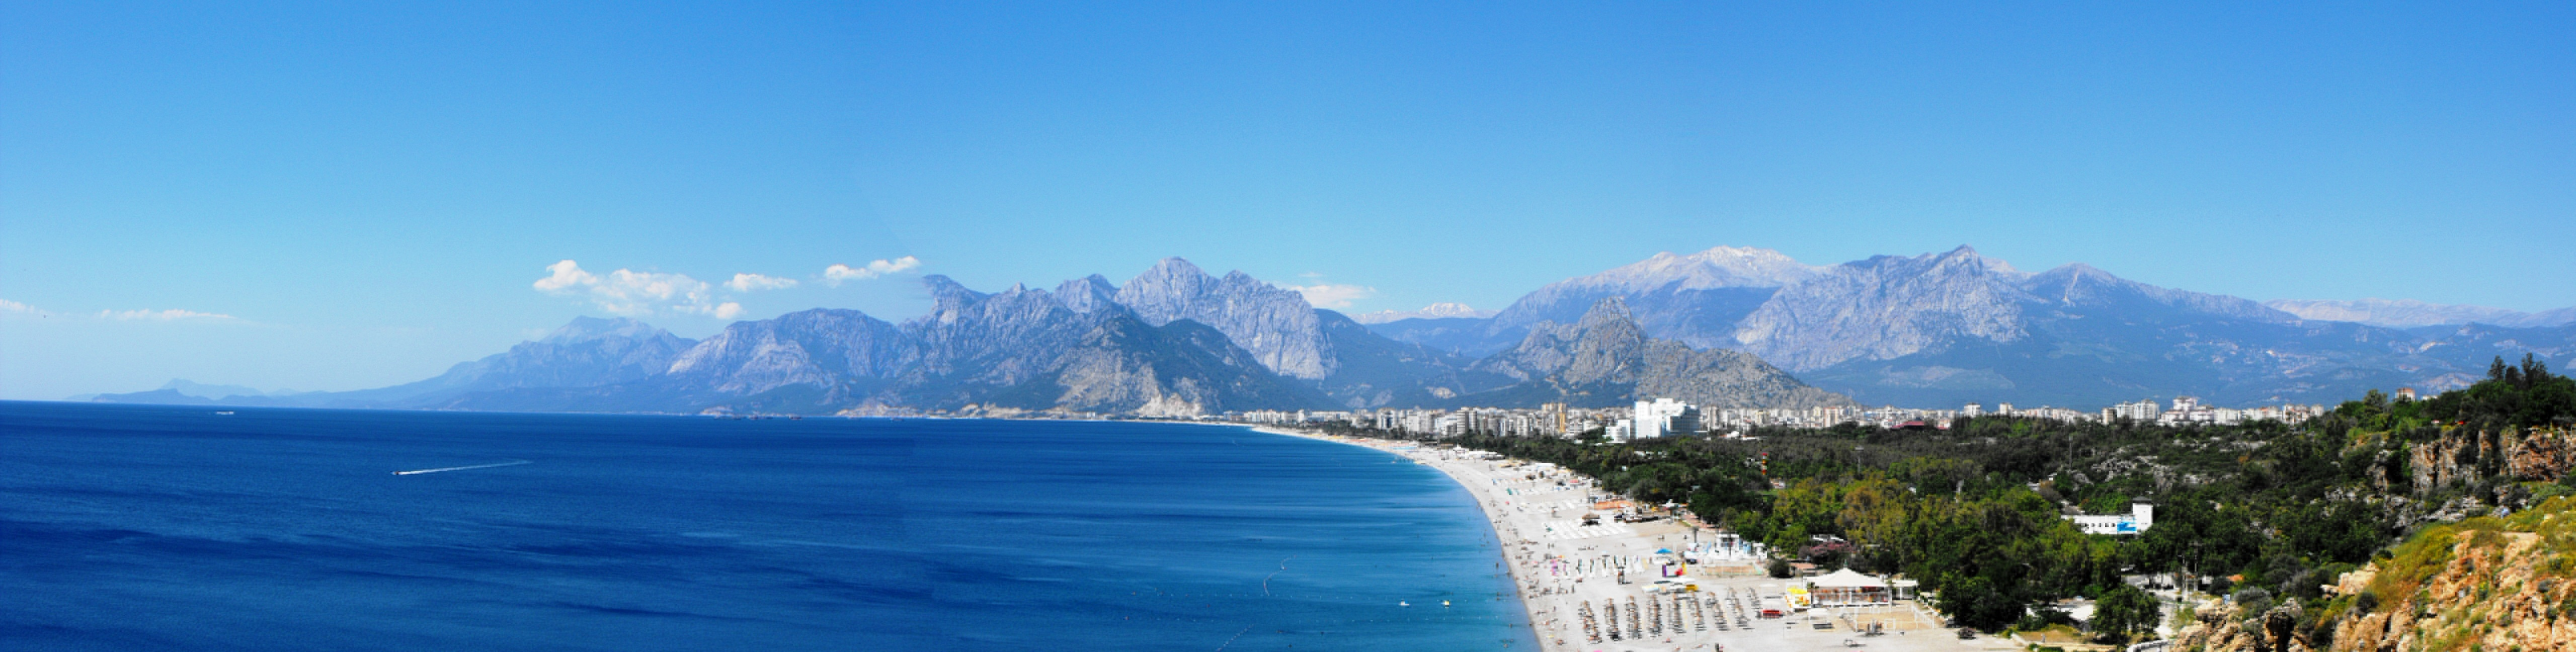 Big beach of antalya photo